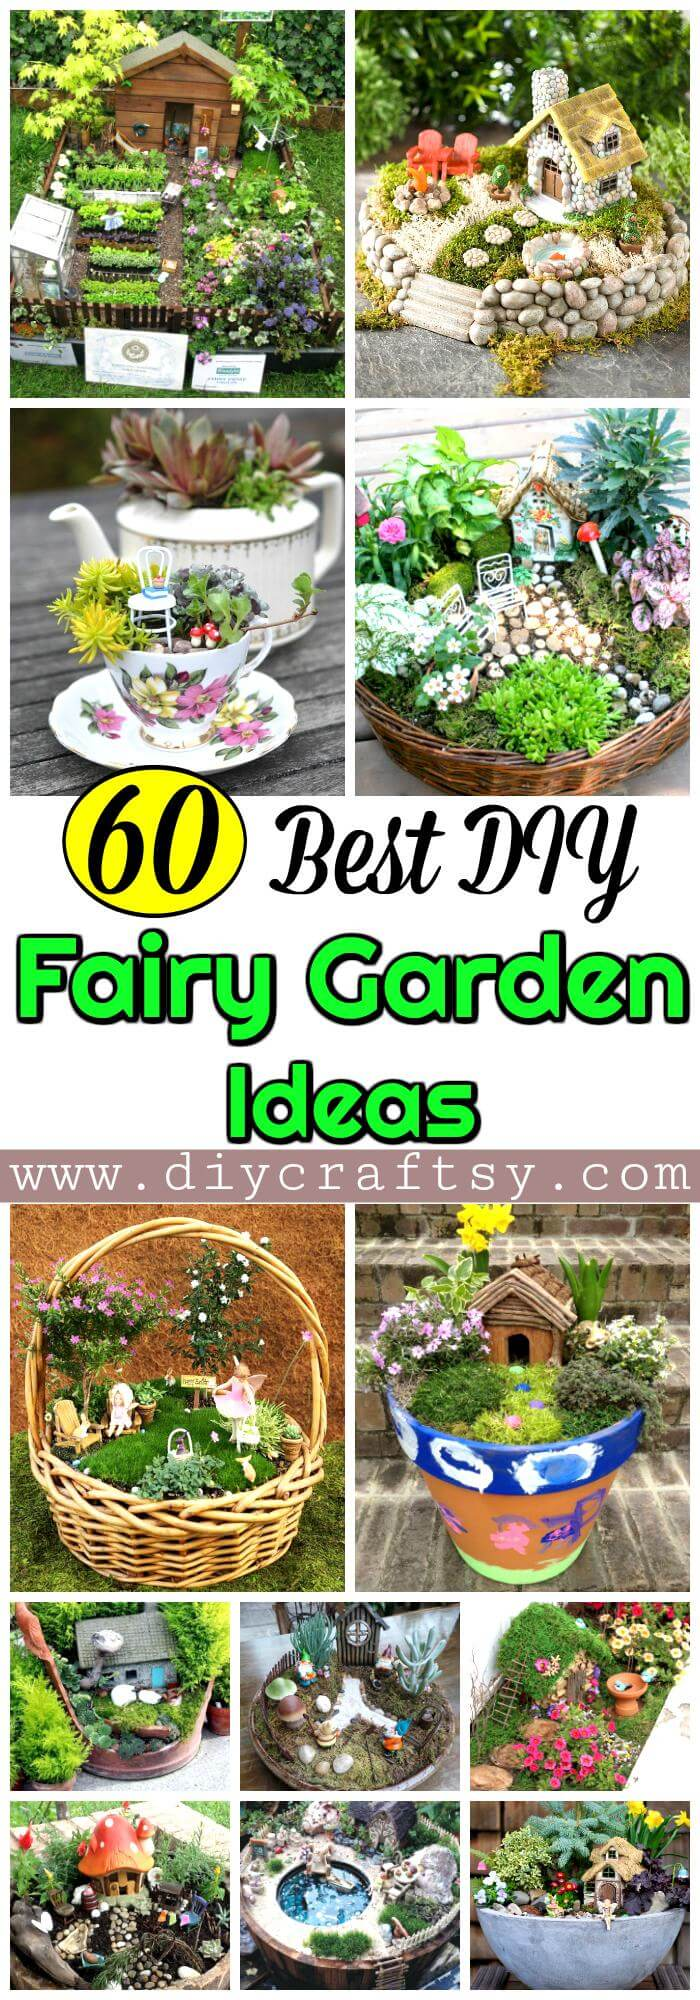 Diy Fairy Garden Ideas 60 best diy fairy garden ideas / fairy garden houses - diy & crafts